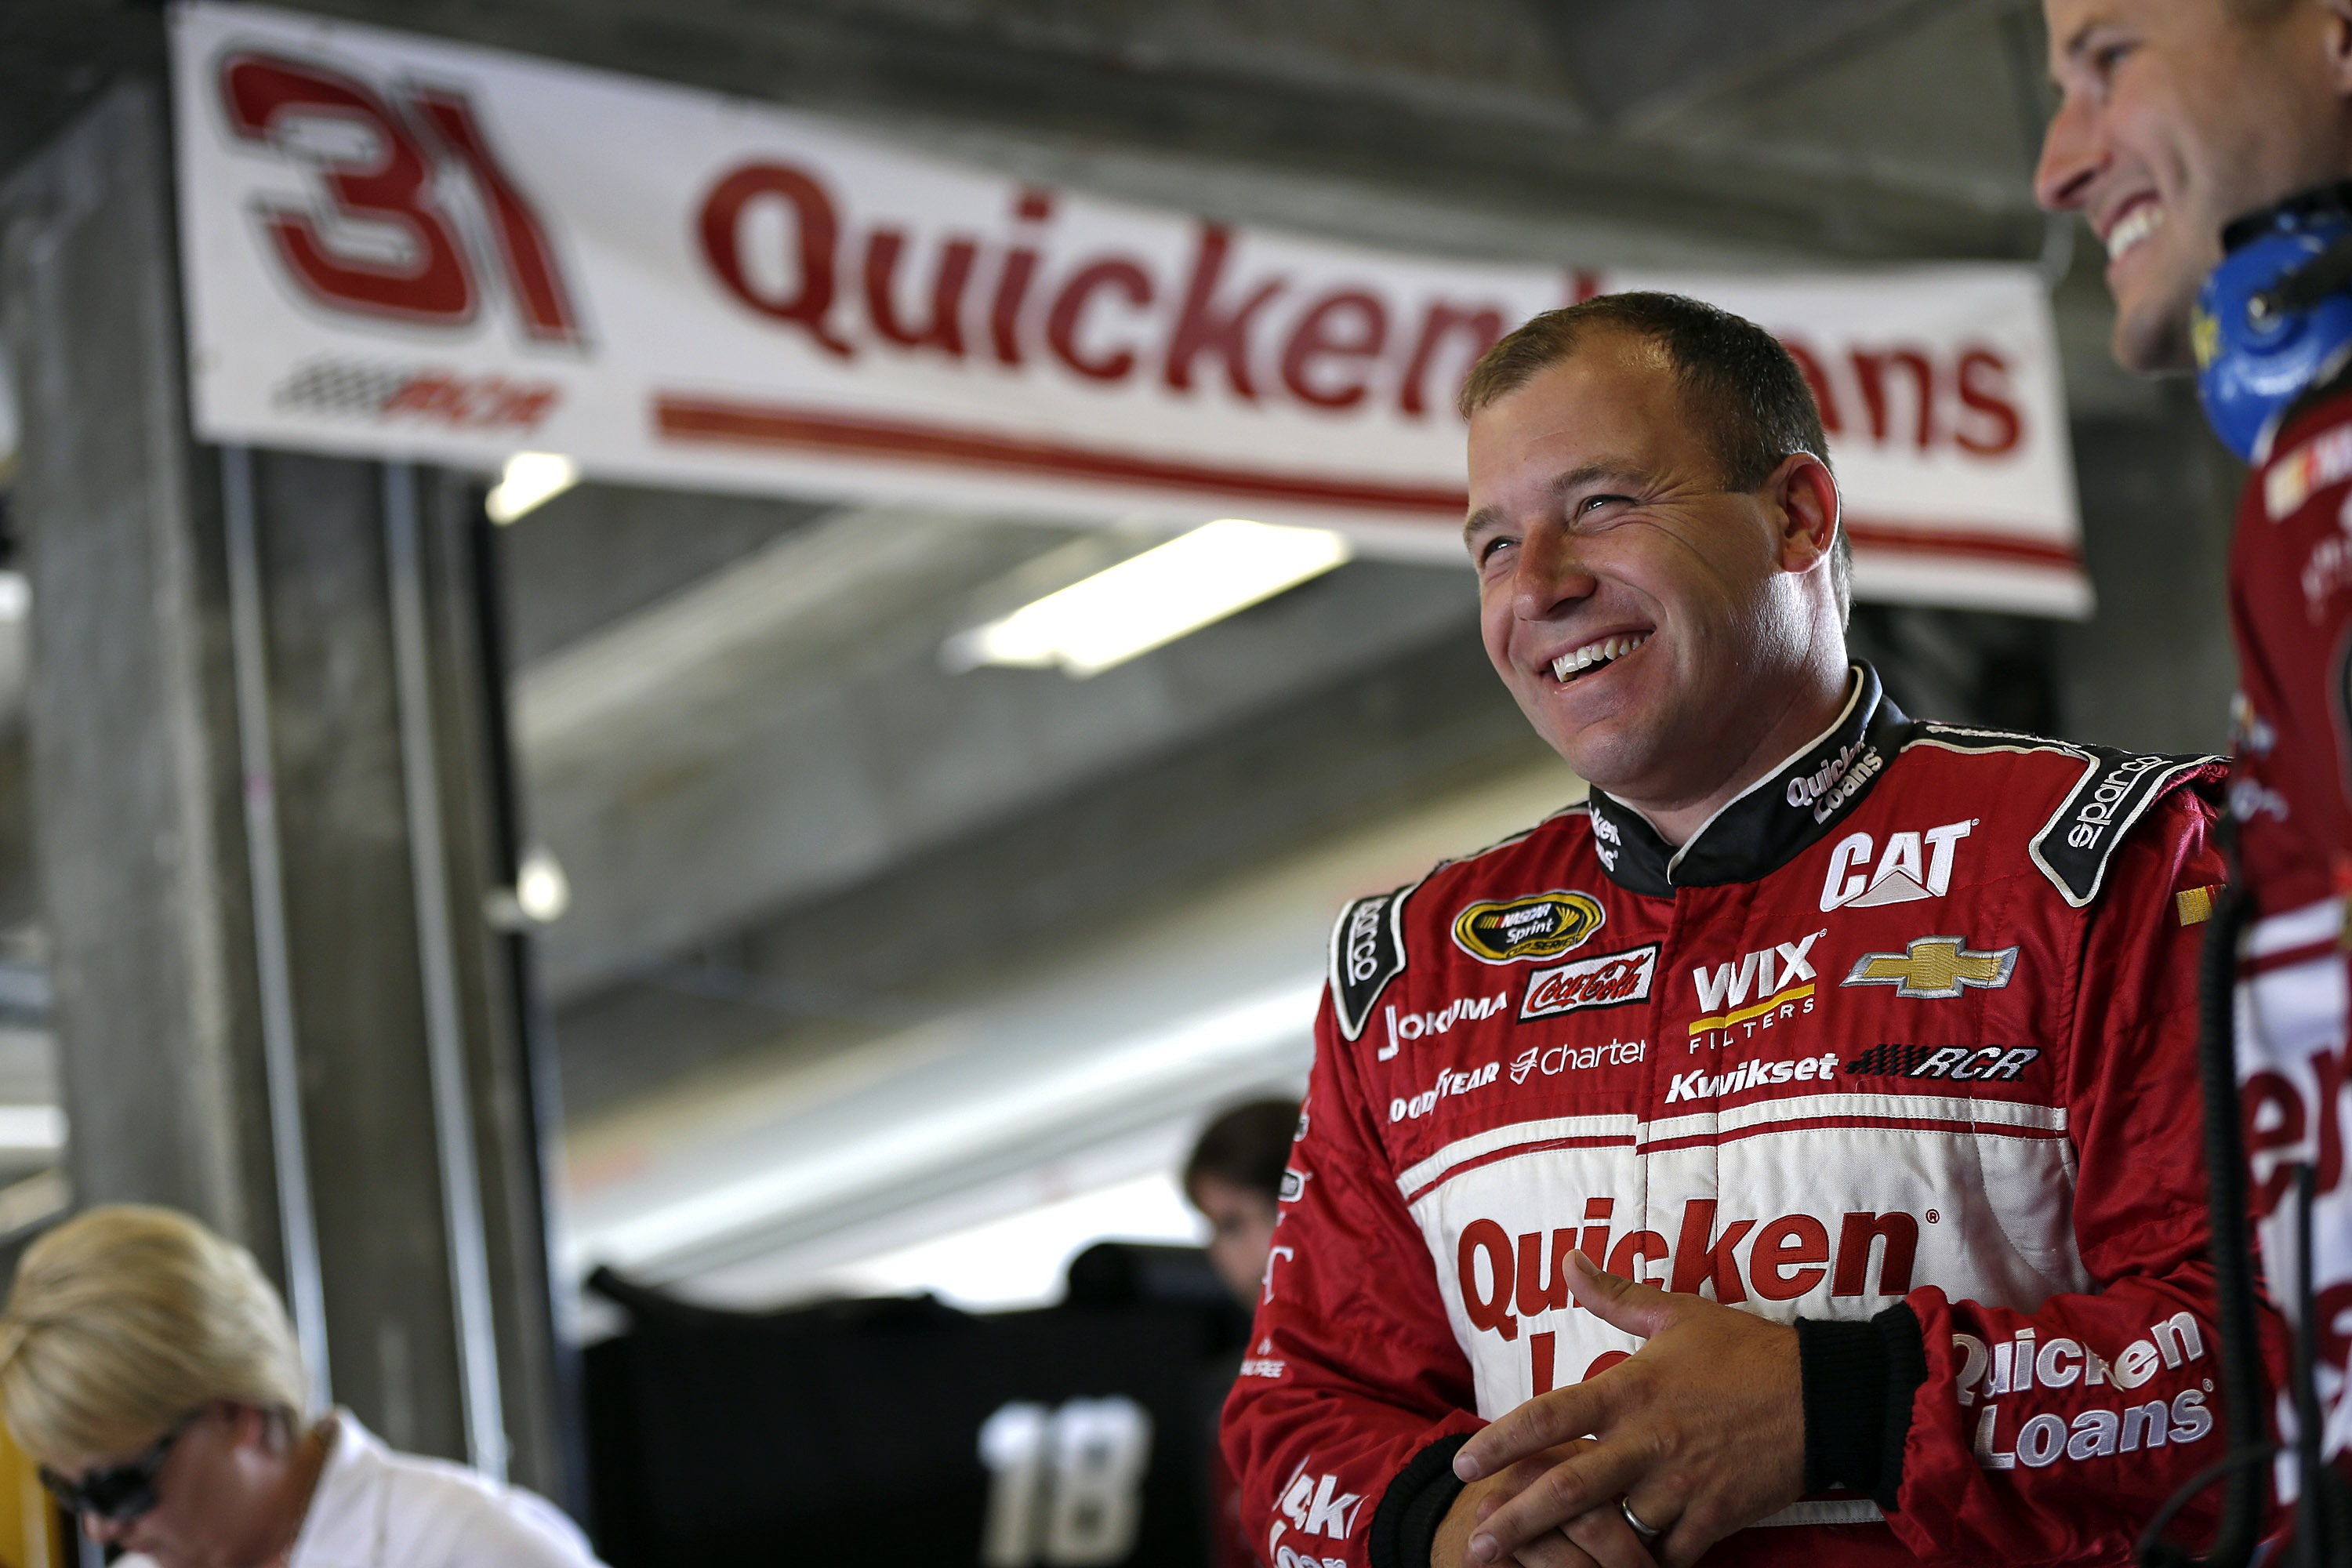 At Indianapolis Motor Speedway in Newman's Chase for the Sprint Cup - Quicken Loans Zing Blog